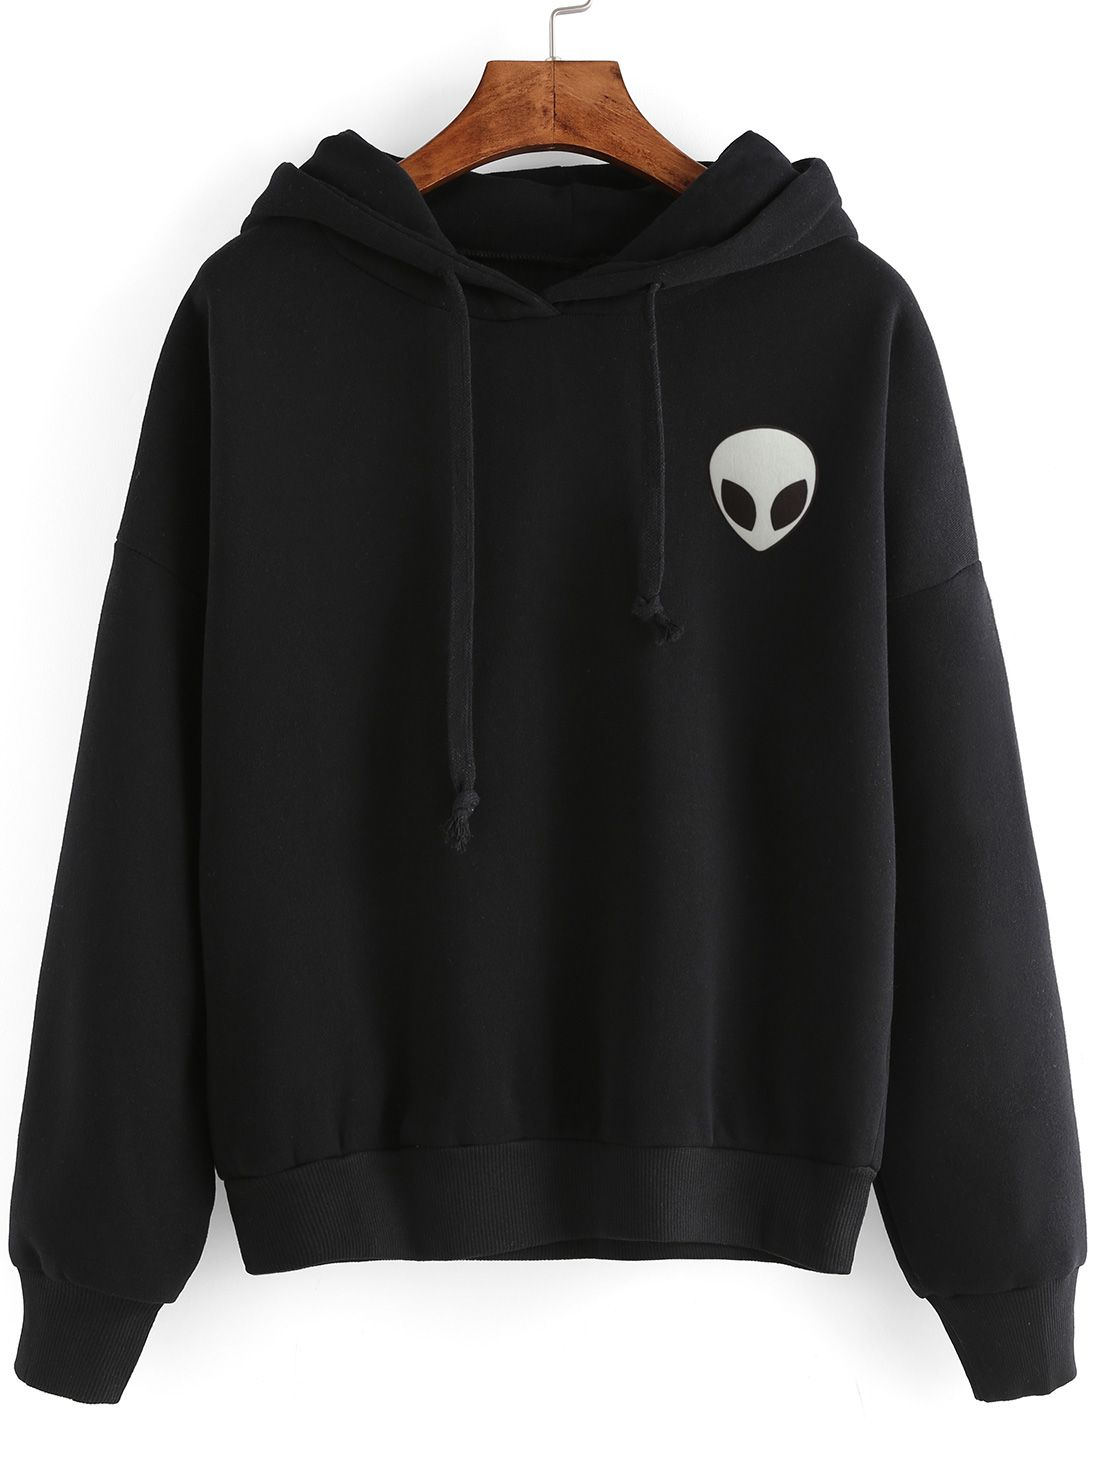 Alien Print Hooded Sweatshirt | Sweatshirts online, Sweatshirt and ...